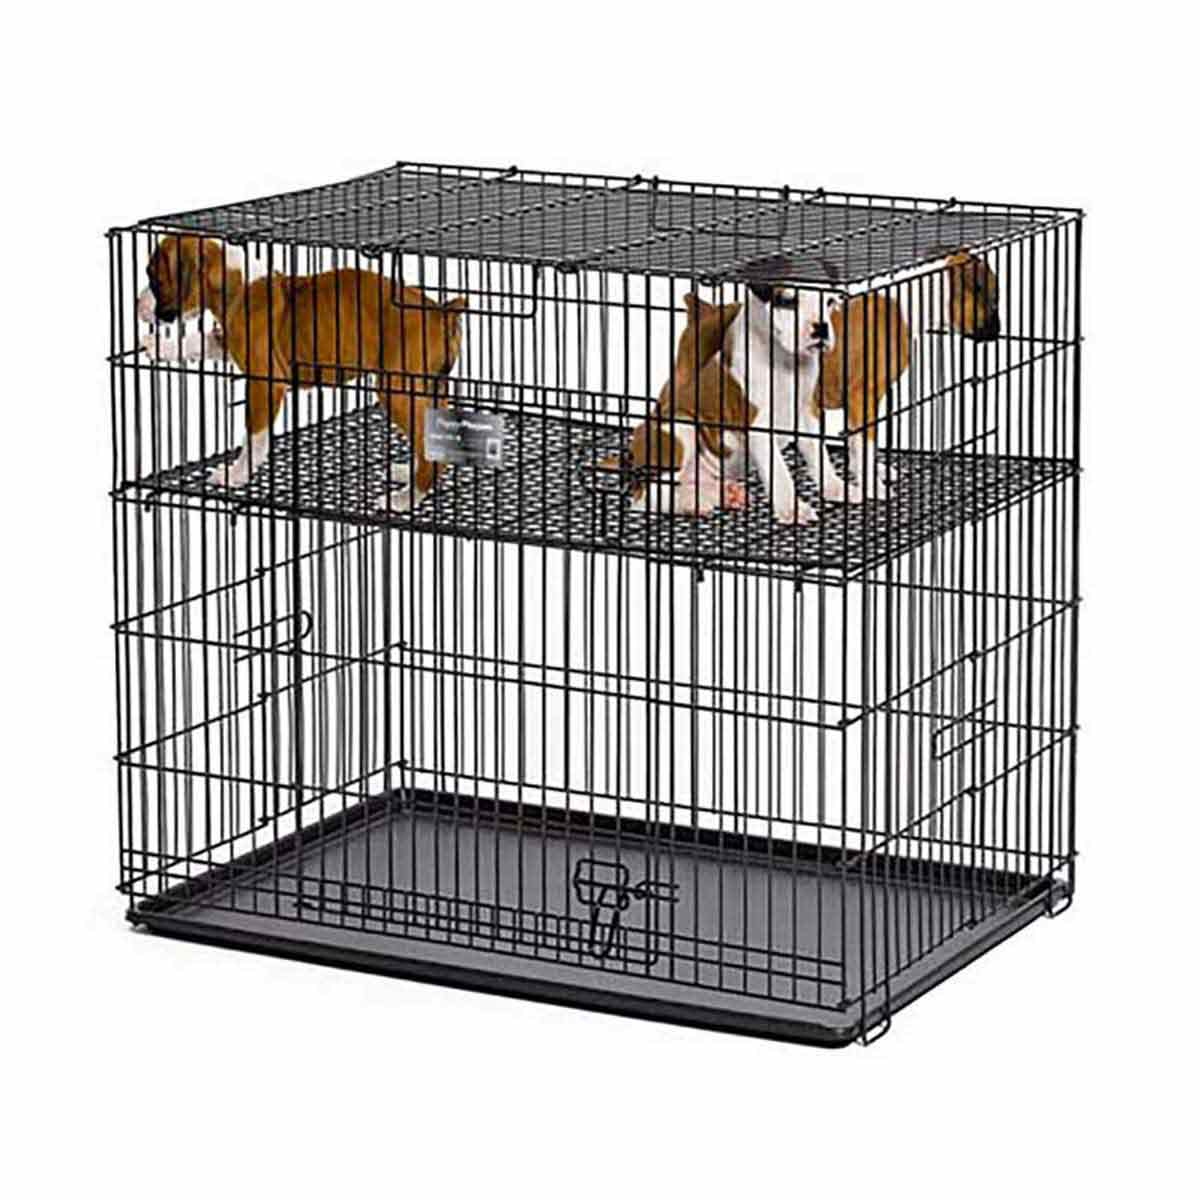 Midwest Puppy Playpen 24 inches by 36 inches by 30 inches